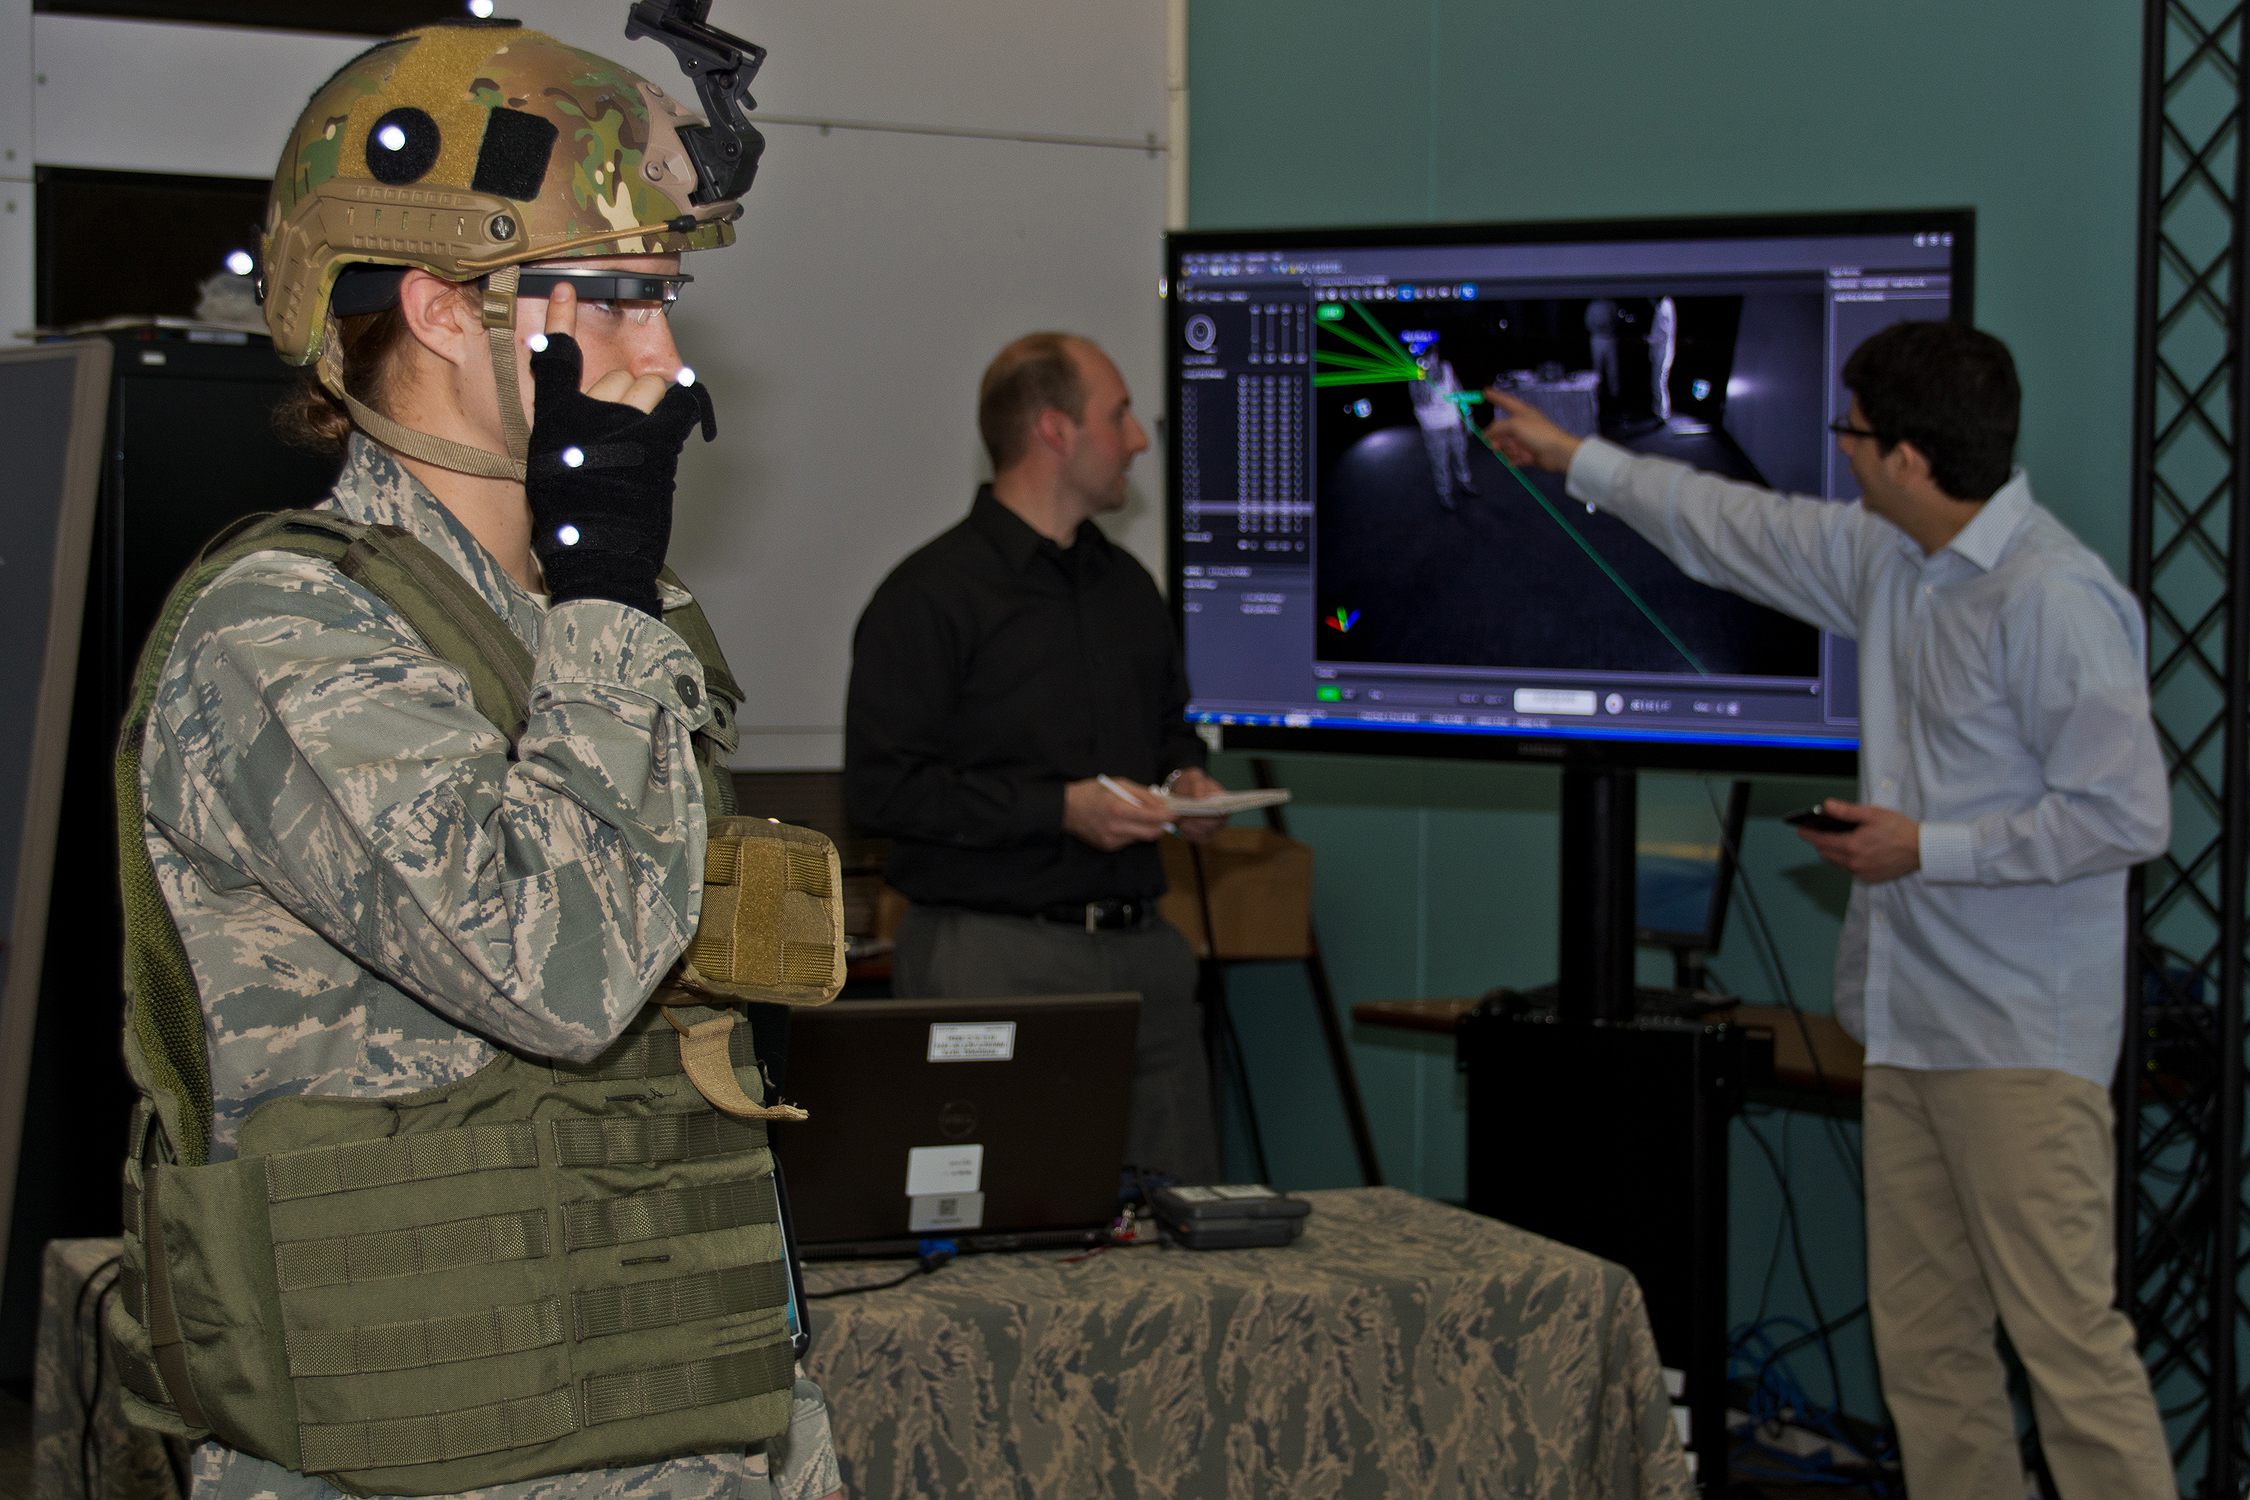 A test of the Google Glass-based BATMAN II at the Air Force Research Lab (AFRL) at Wright-Patterson Air Force Base.